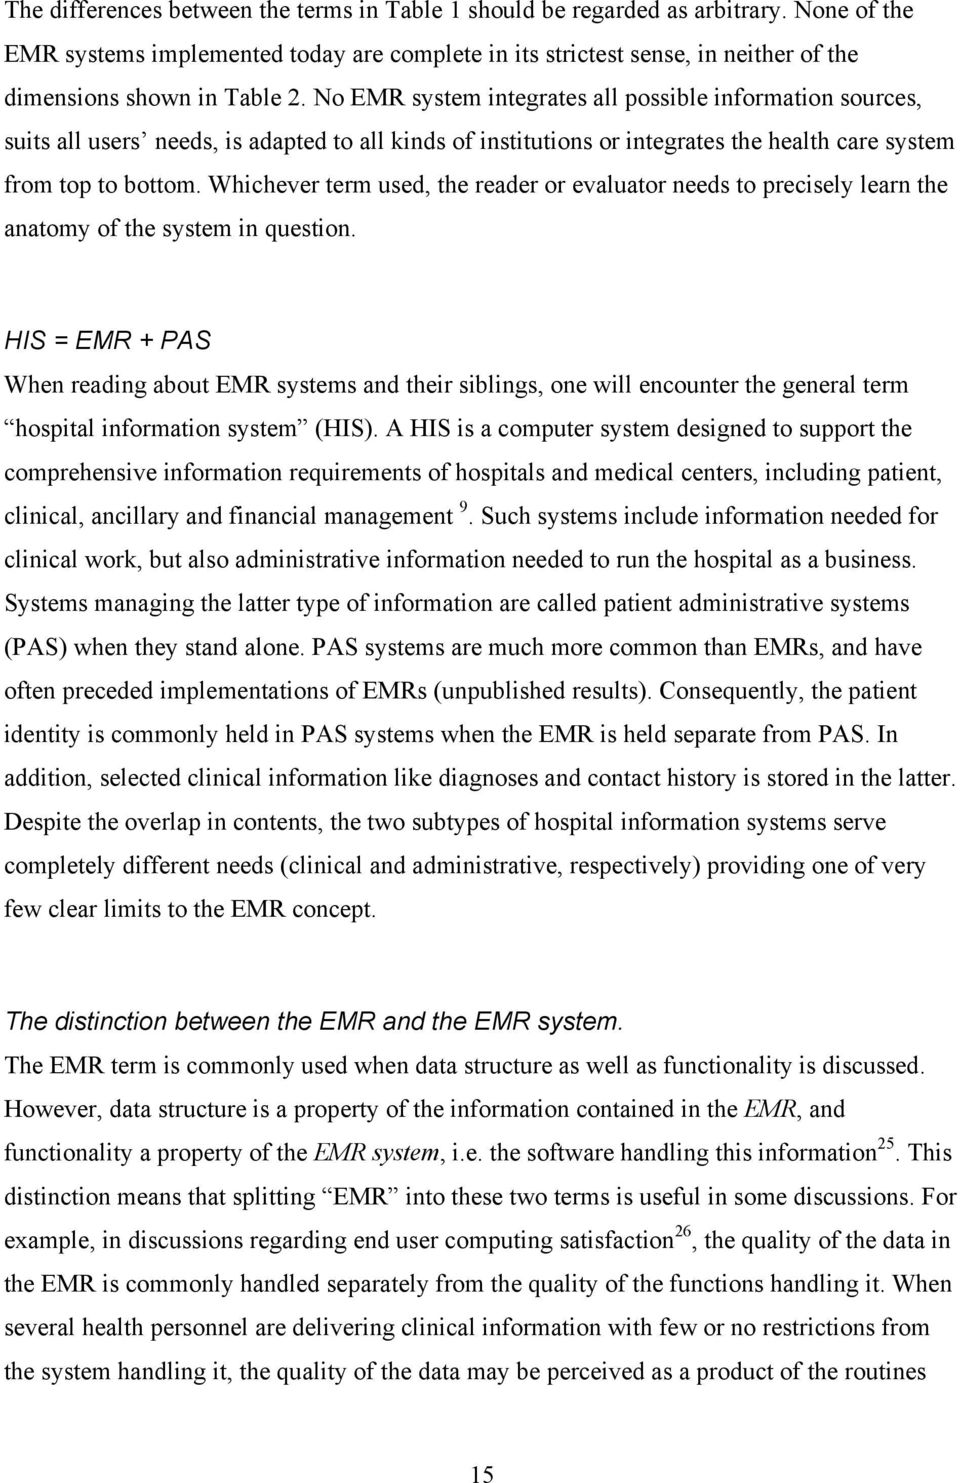 No EMR system integrates all possible information sources, suits all users needs, is adapted to all kinds of institutions or integrates the health care system from top to bottom.